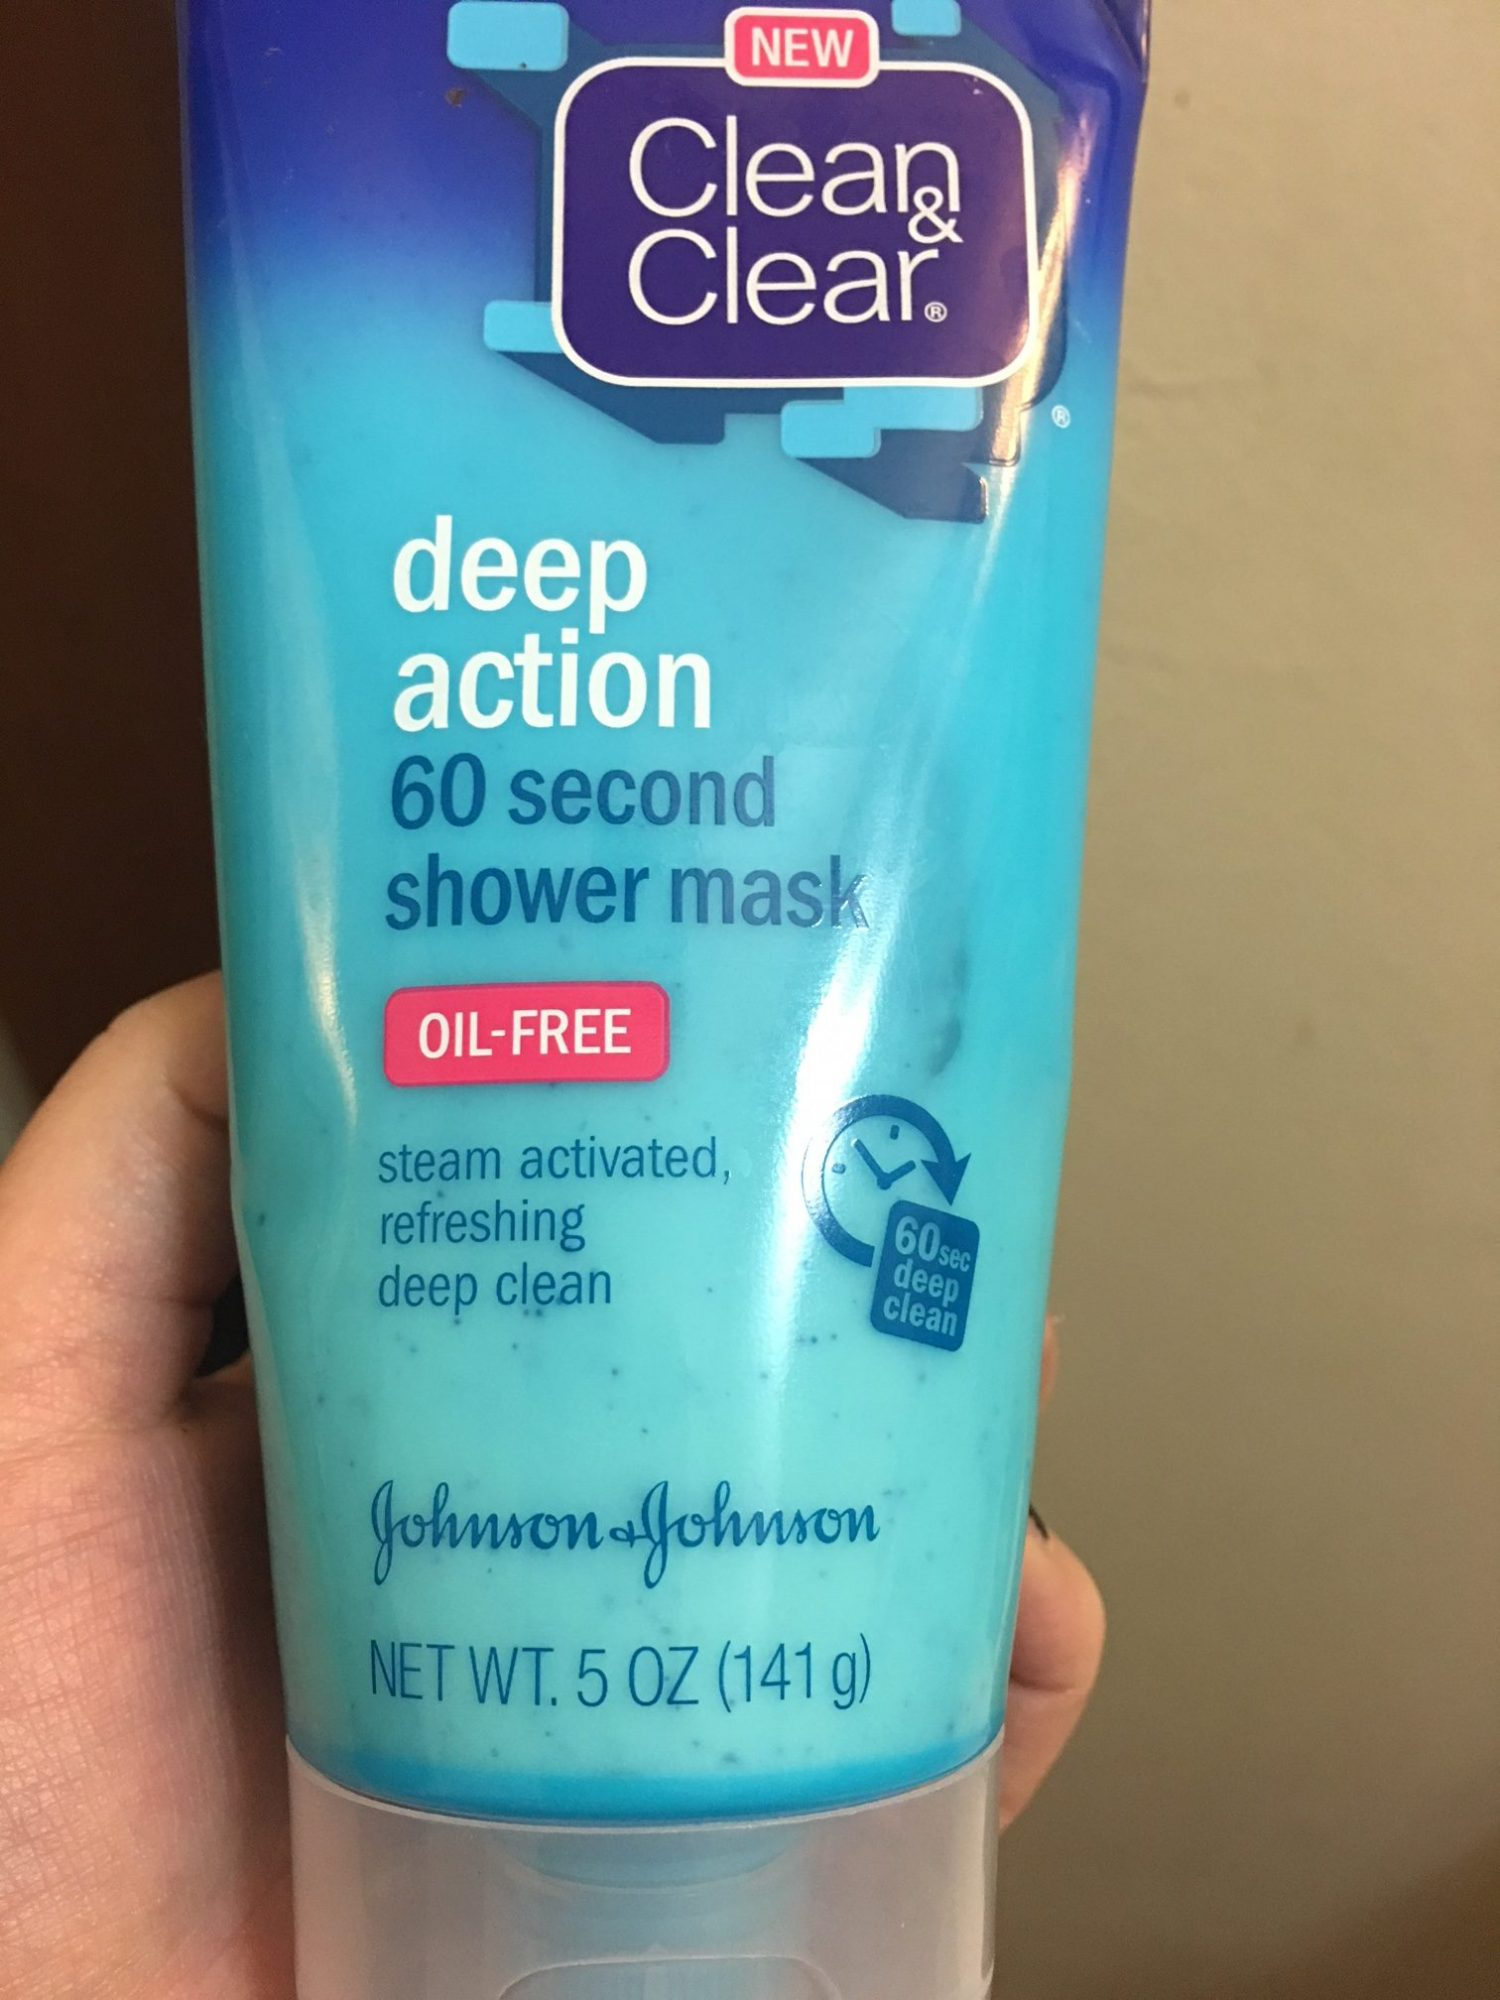 cleanandclear.jpg